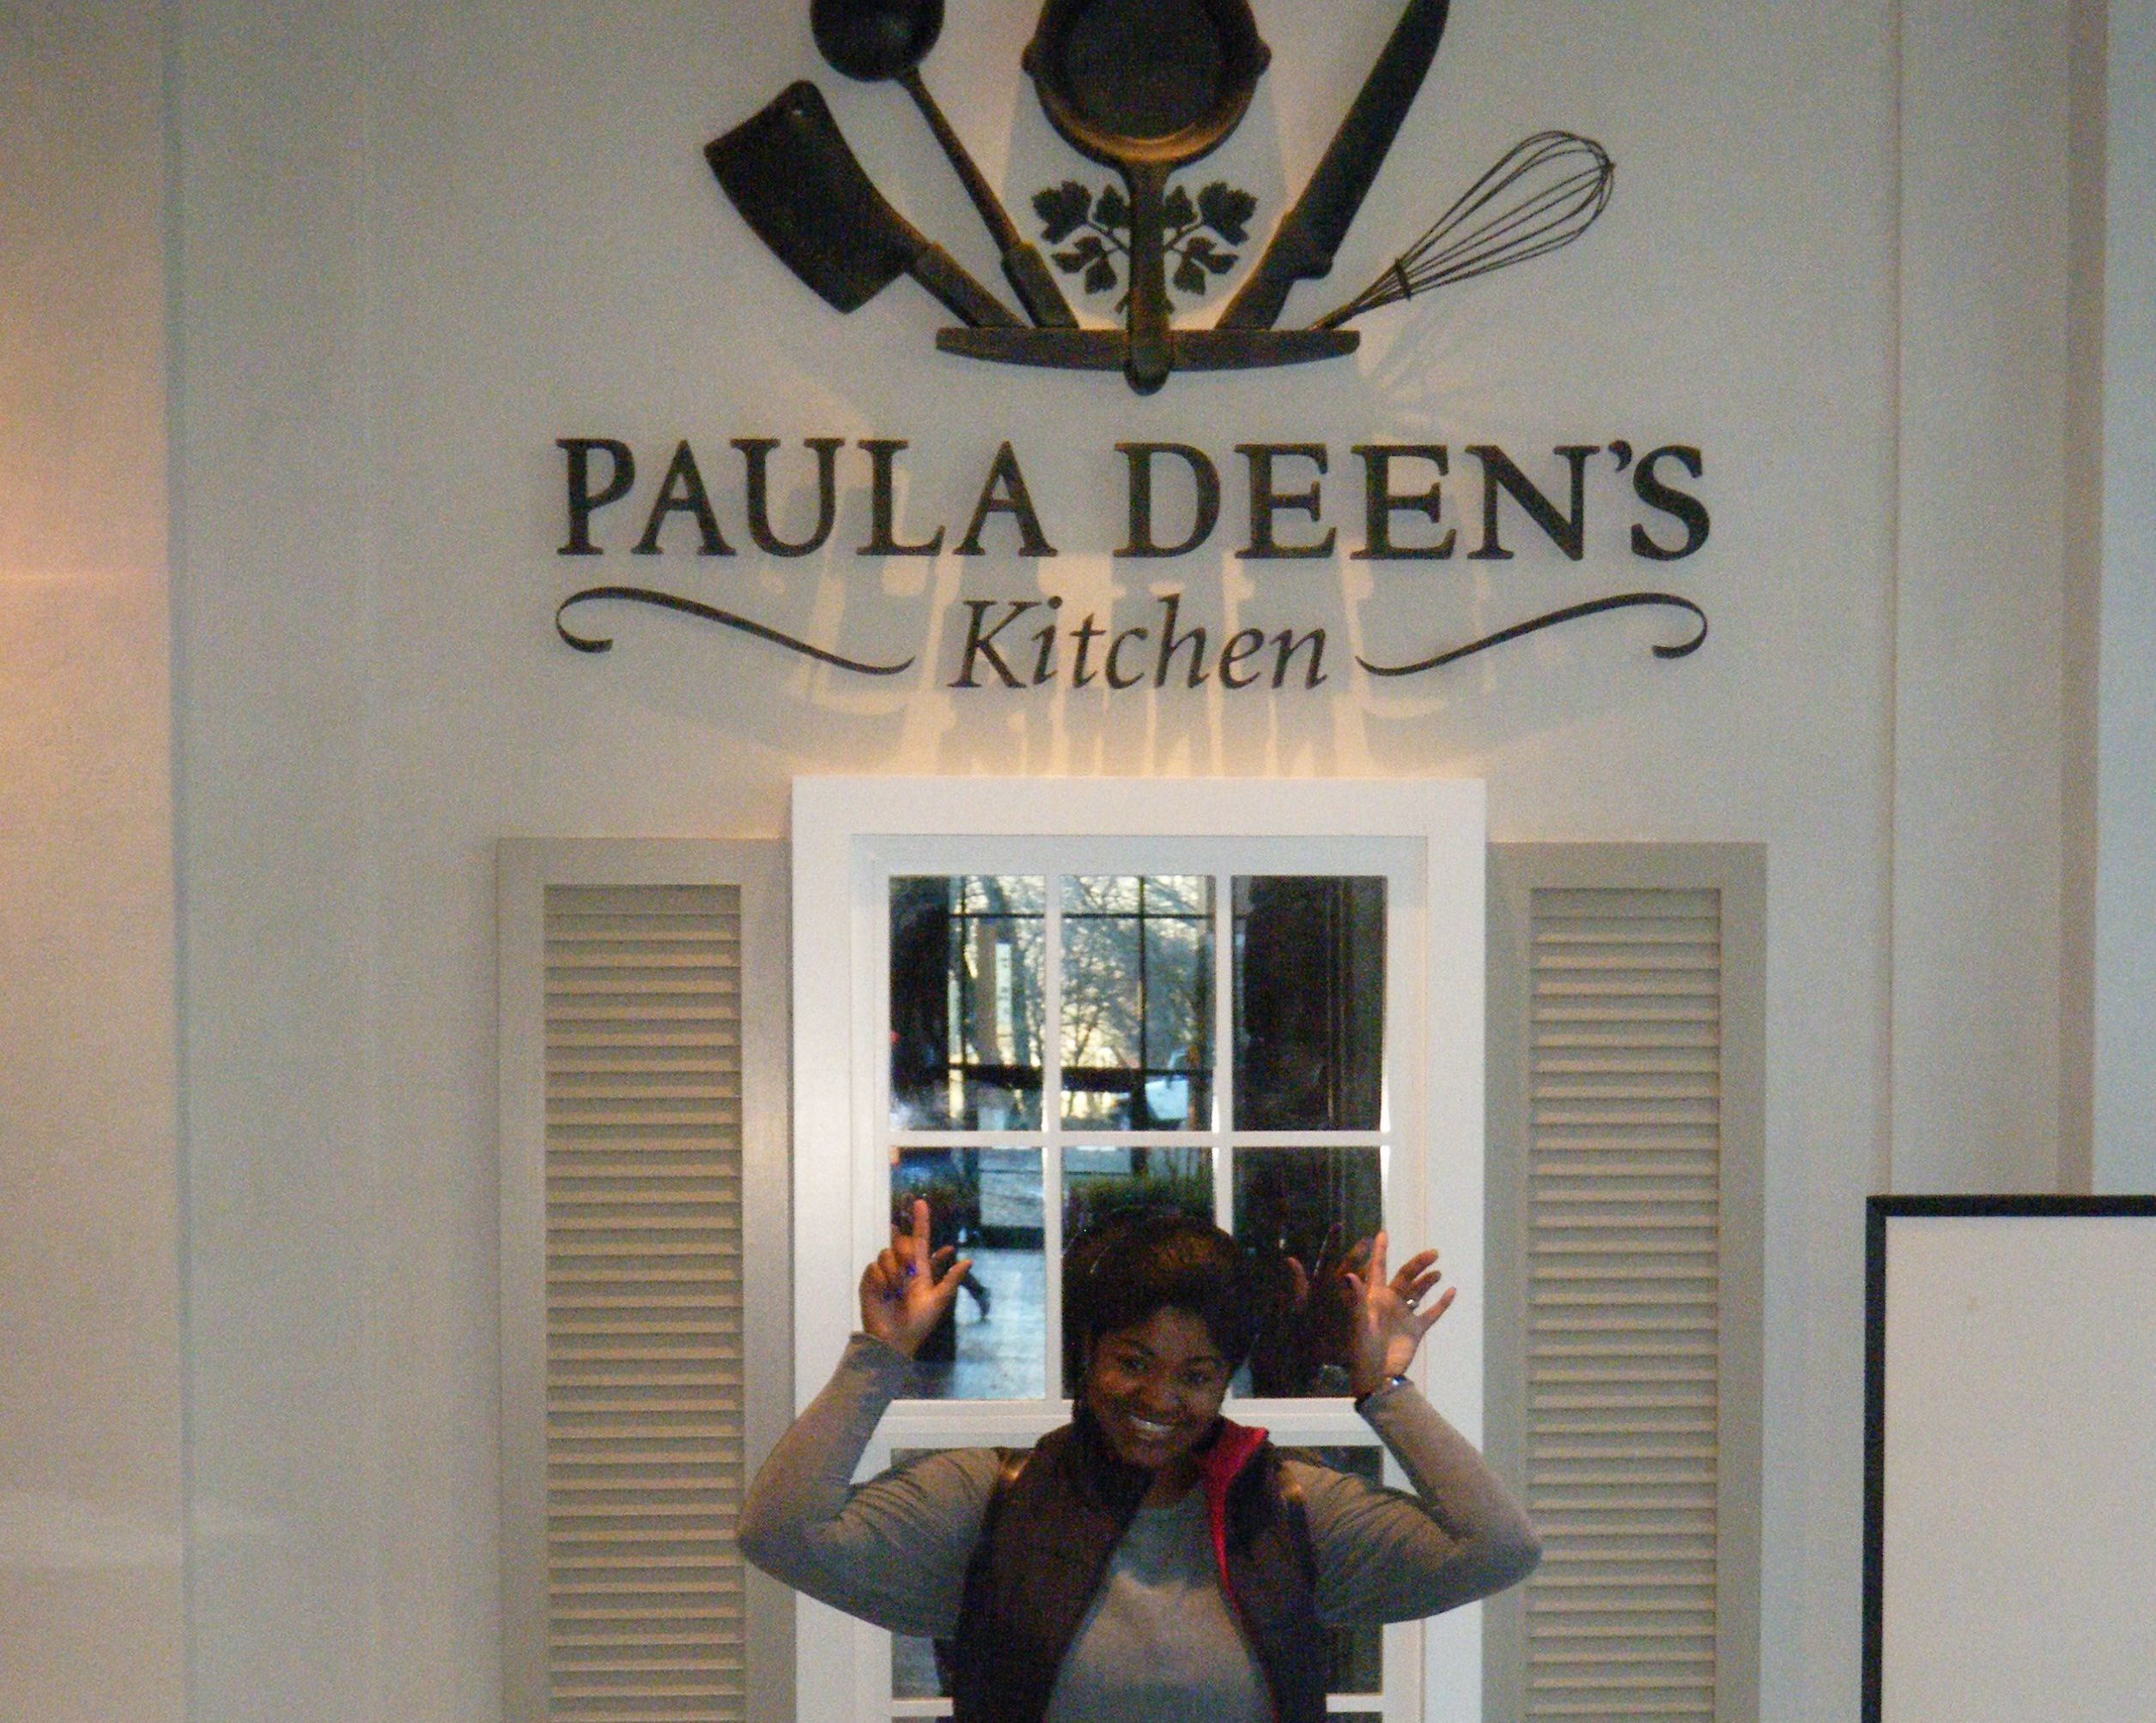 Paula dean at harrahs casino in new orleans louisiana casino hard rock tampa